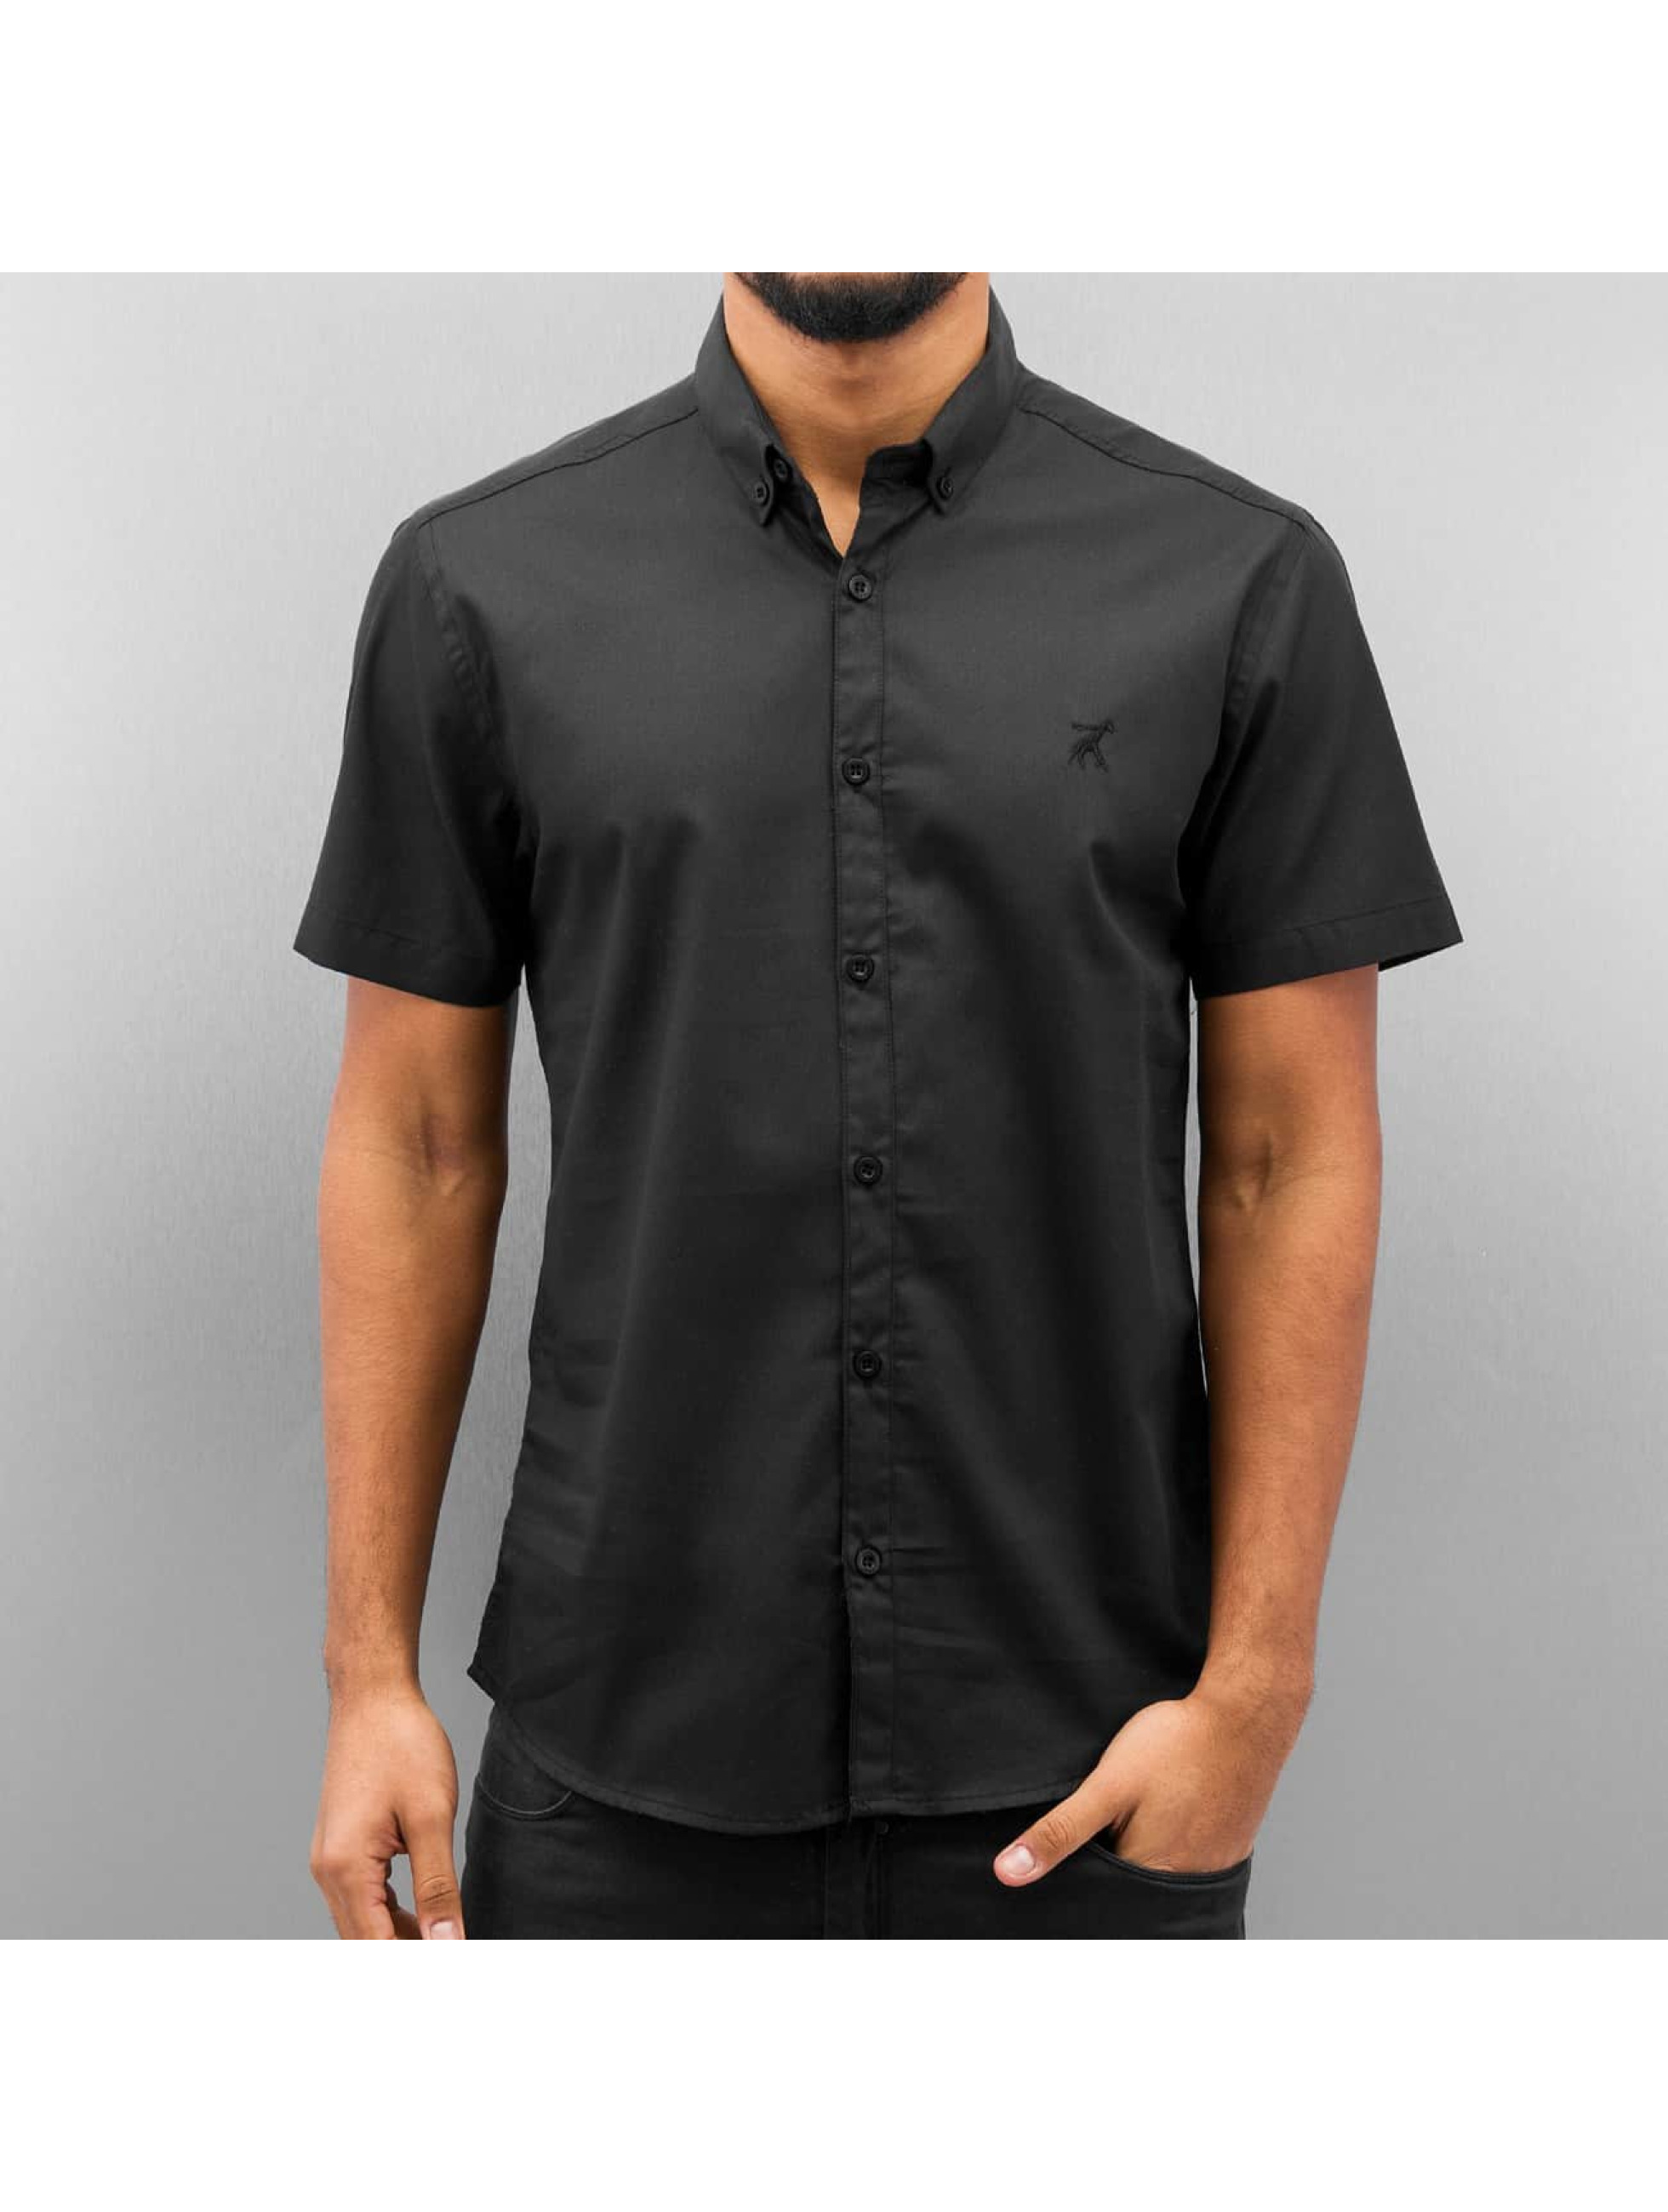 Cazzy Clang / Shirt Short Sleeves II in black S